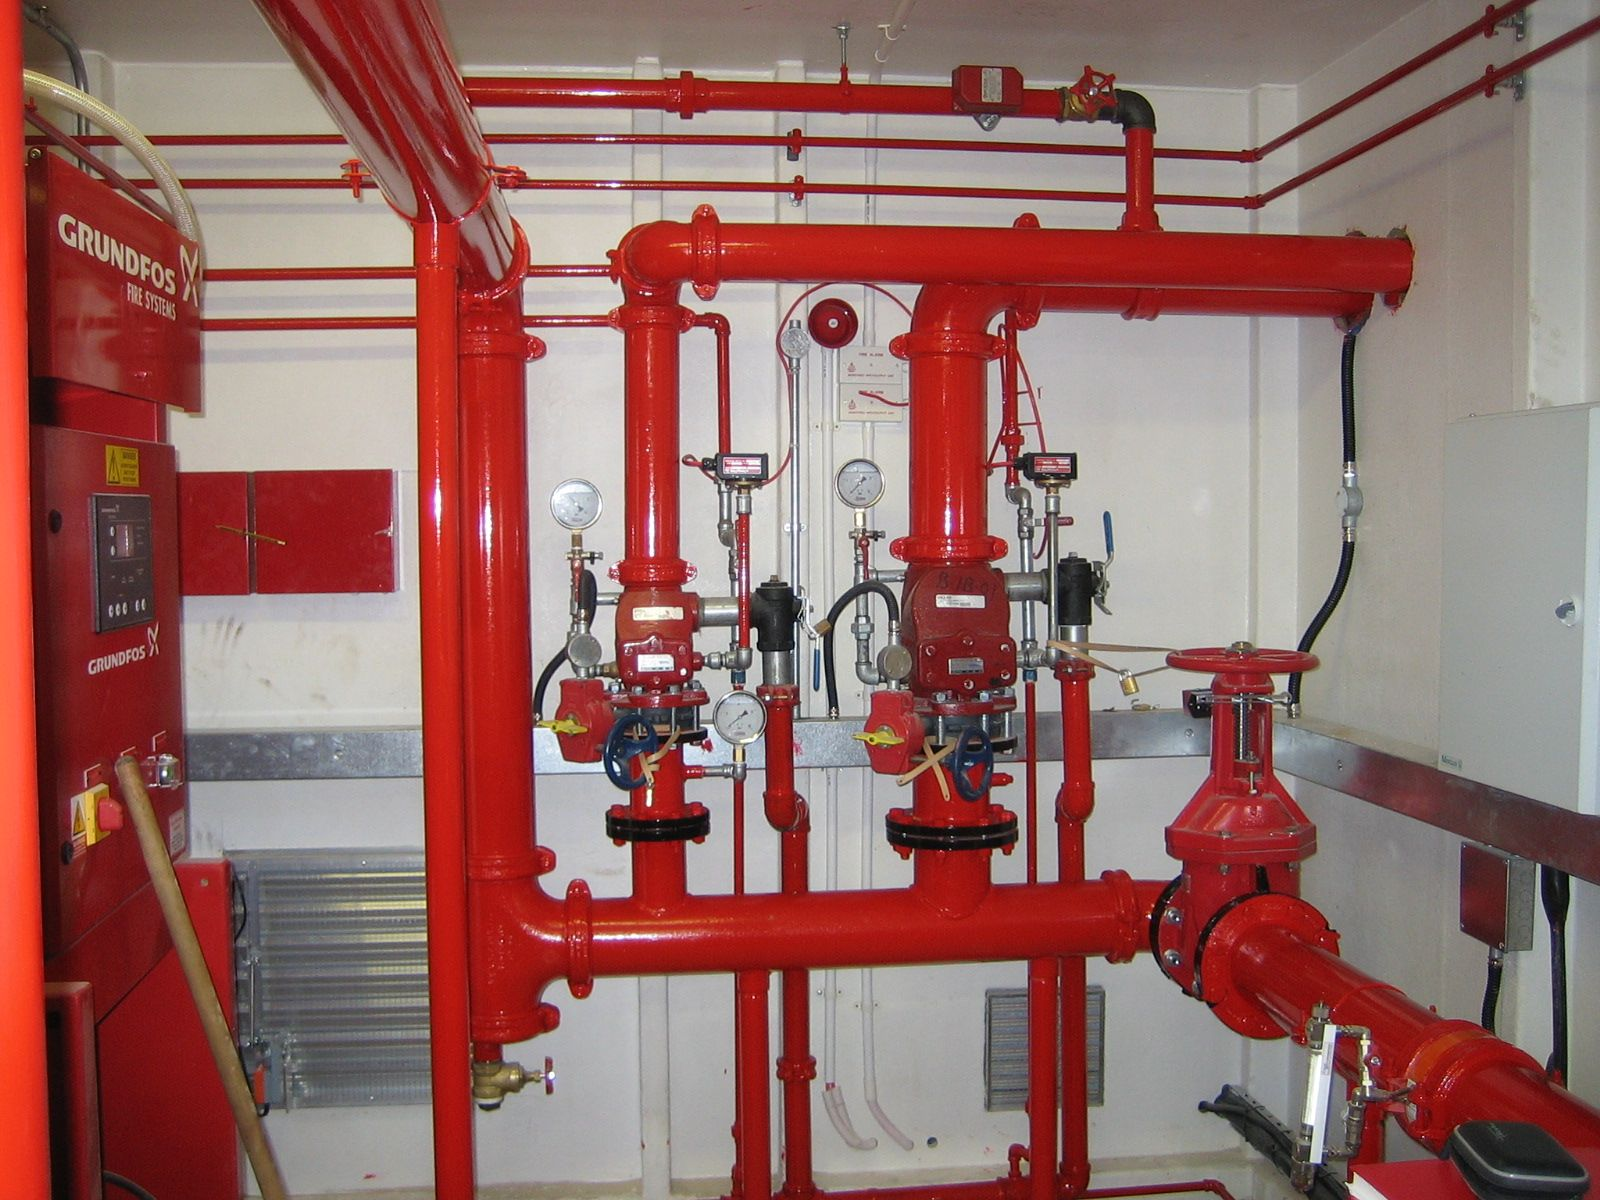 17 Best images about fire systems on Pinterest